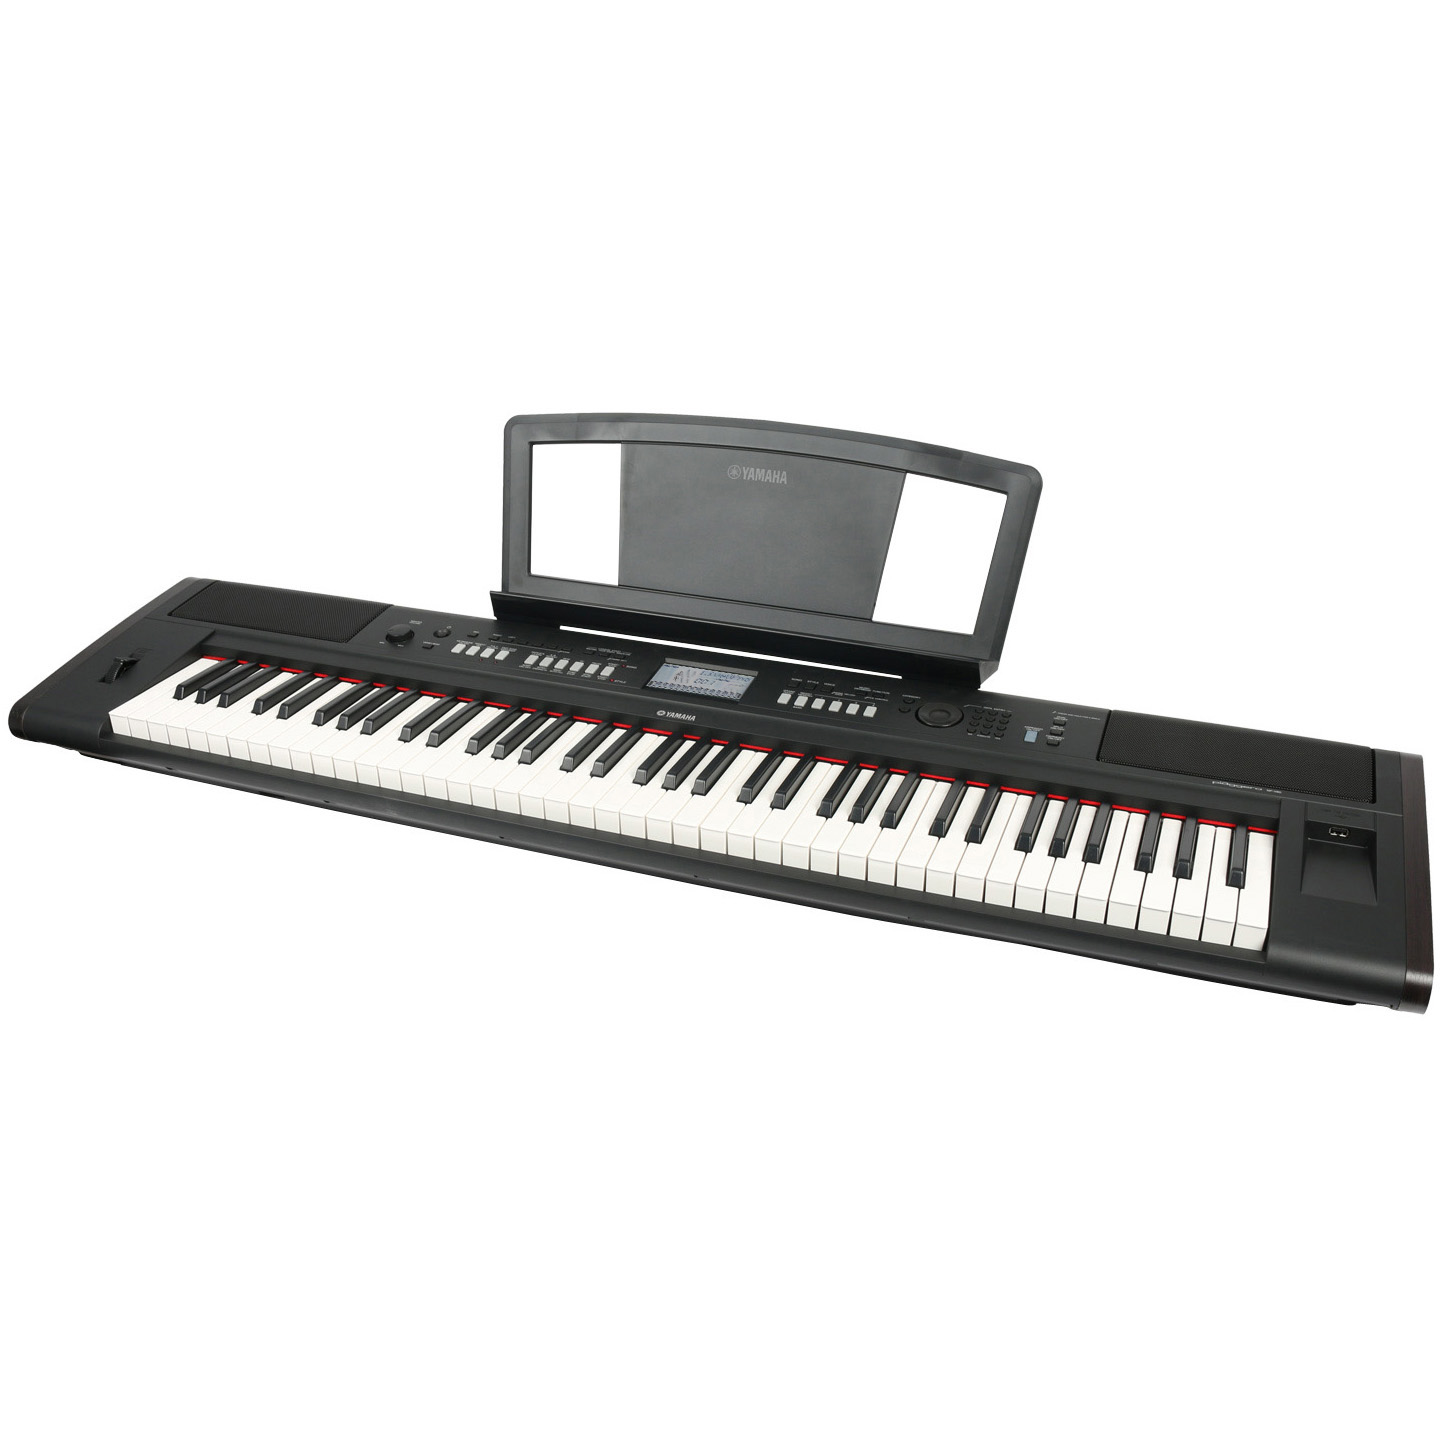 yamaha np v80 piaggero digital piano kaufen bax shop. Black Bedroom Furniture Sets. Home Design Ideas